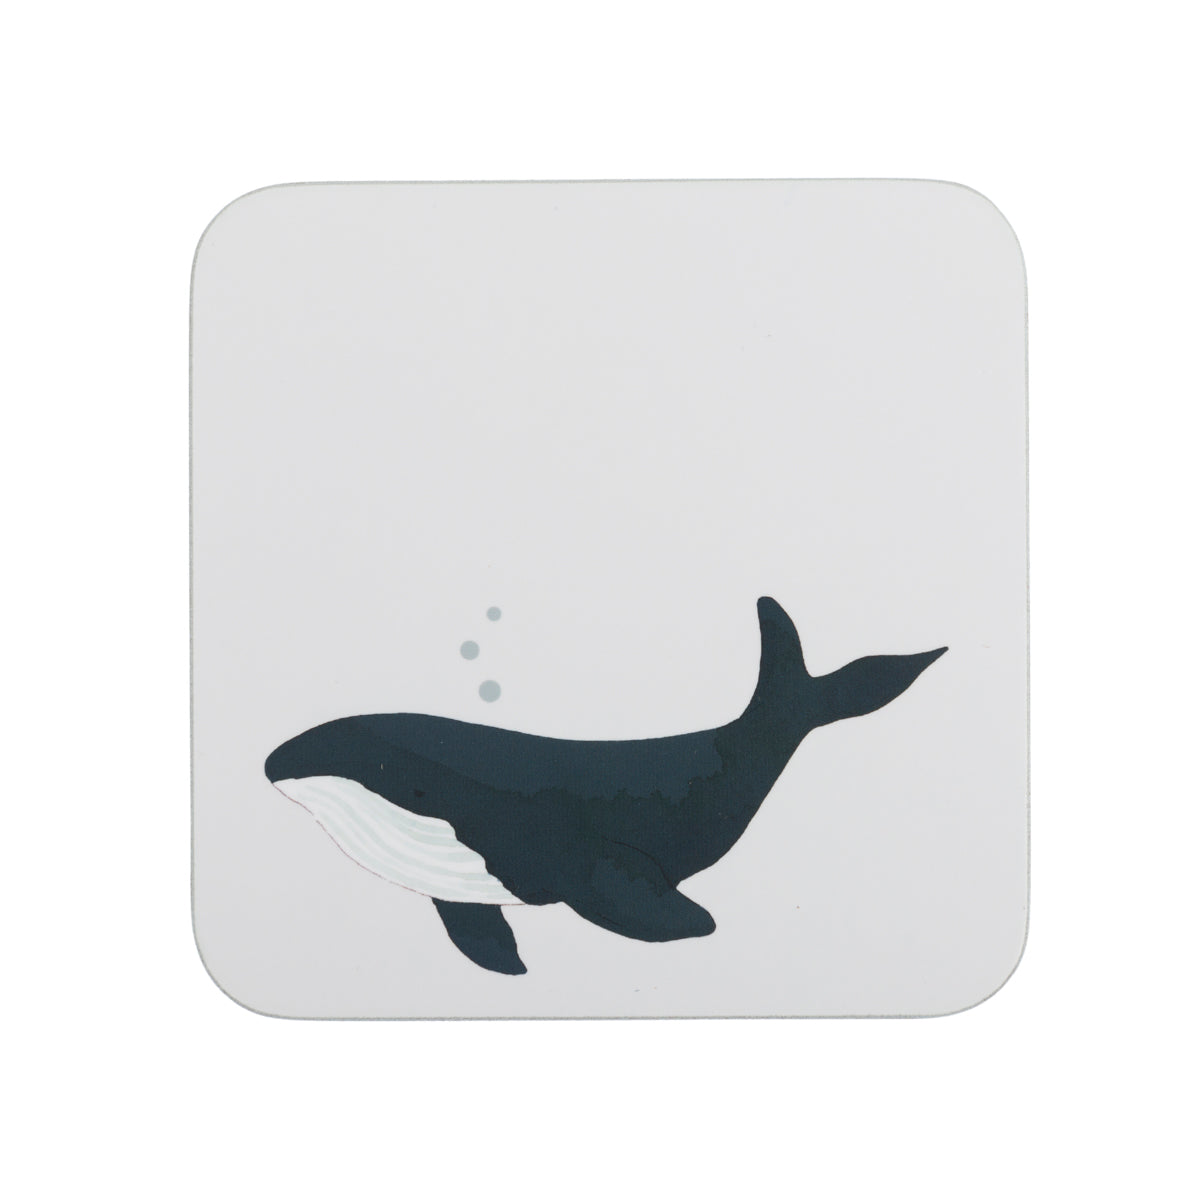 Whales Cork Coasters (Set of 4) by Sophie Allport